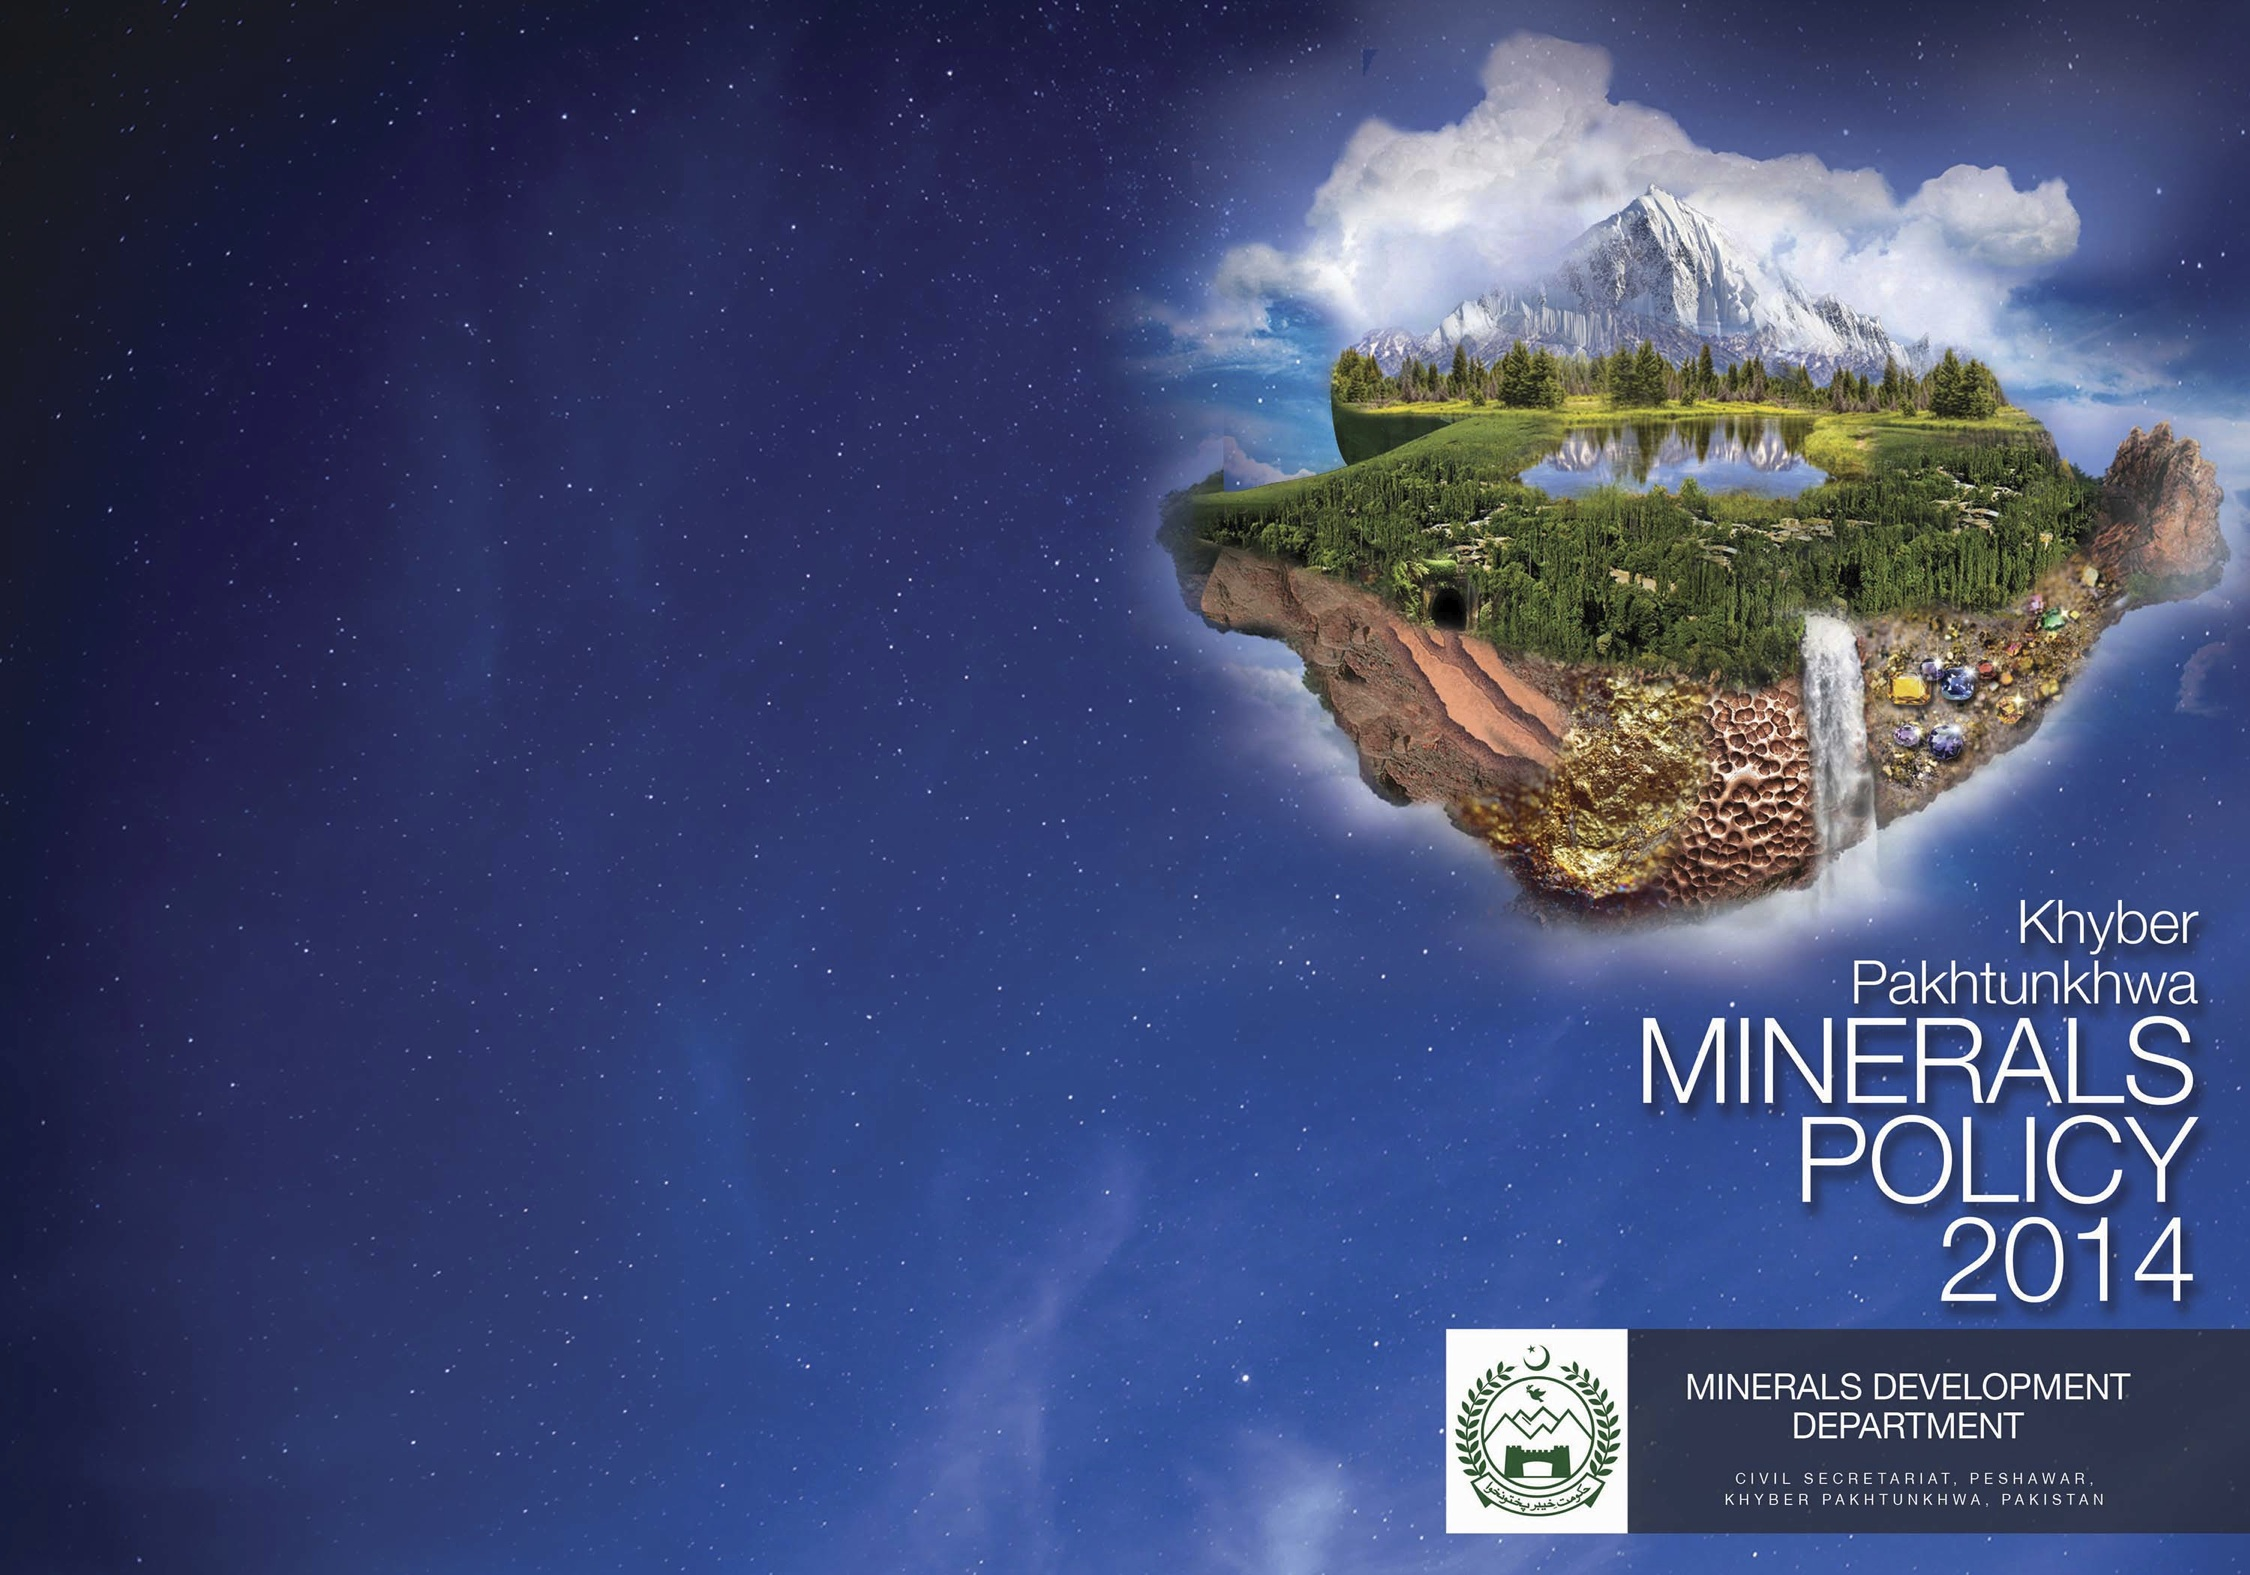 KPK Mining Policy 2014 (official)